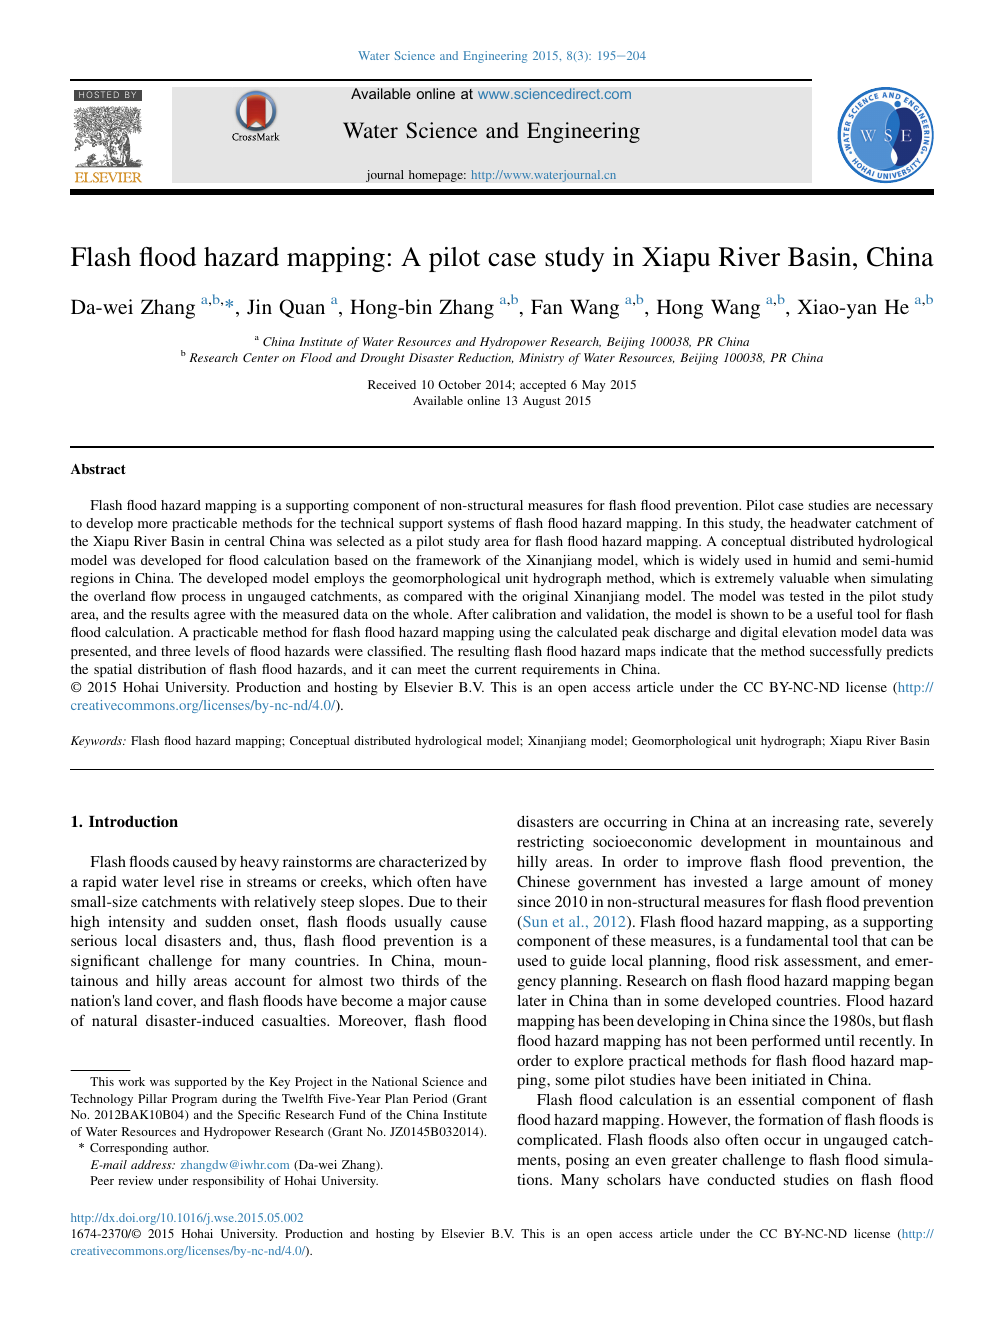 Flash flood hazard mapping: A pilot case study in Xiapu